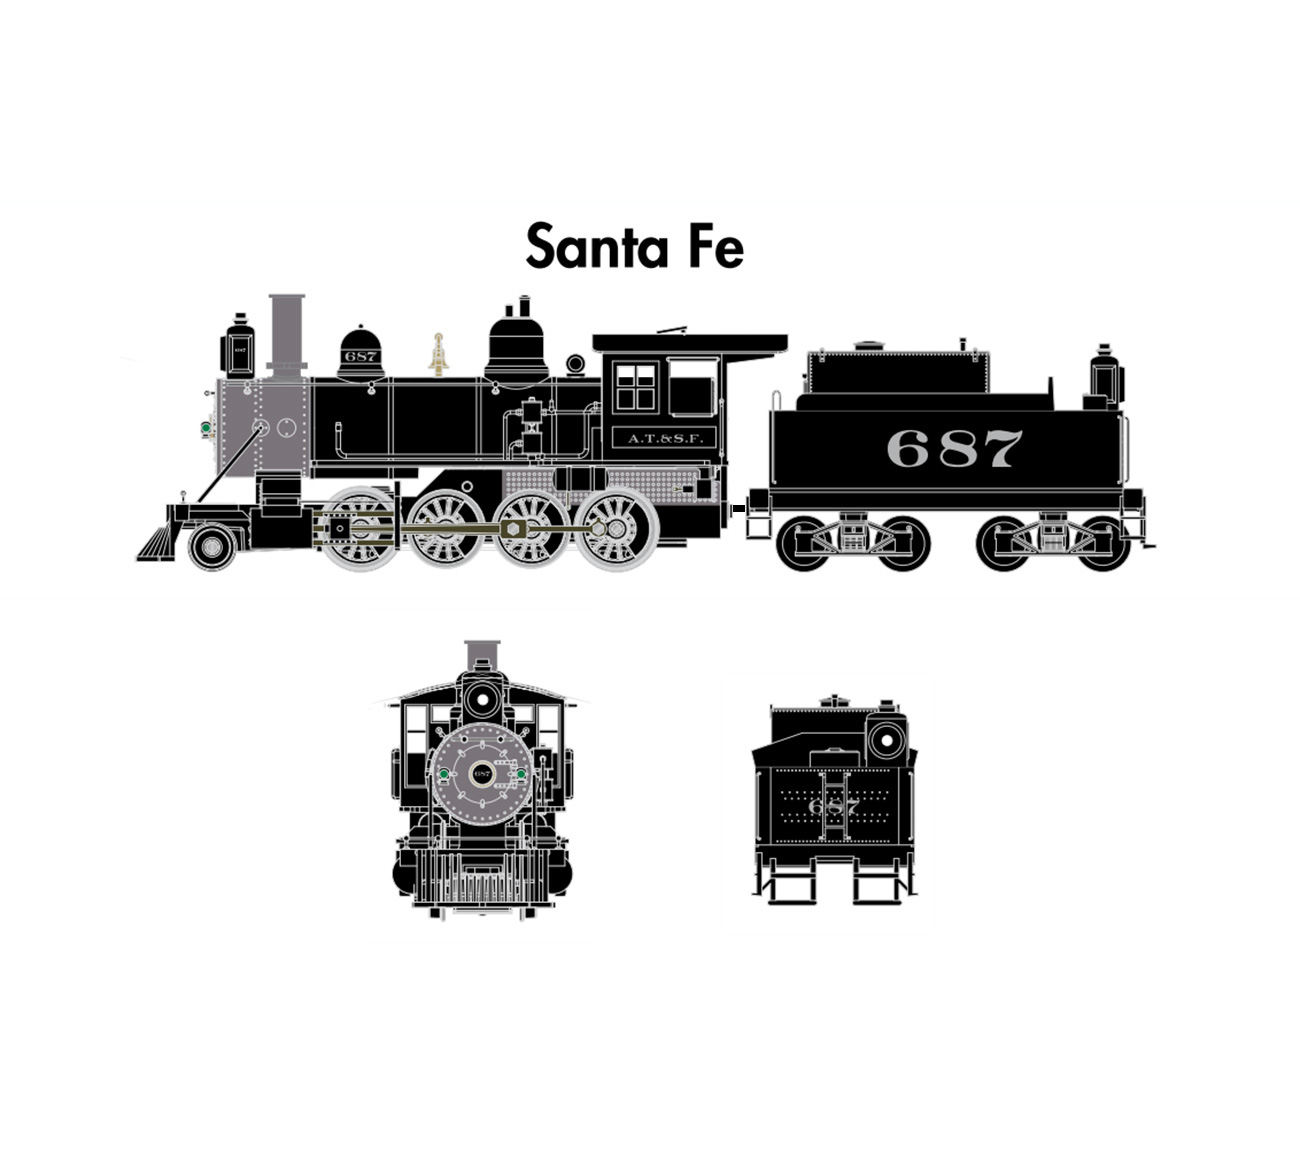 Scale steam locomotives for sale n scale steam locomotives - Athearn N Scale Old Time 2 8 0 Dc Atsf 687 Ath06800